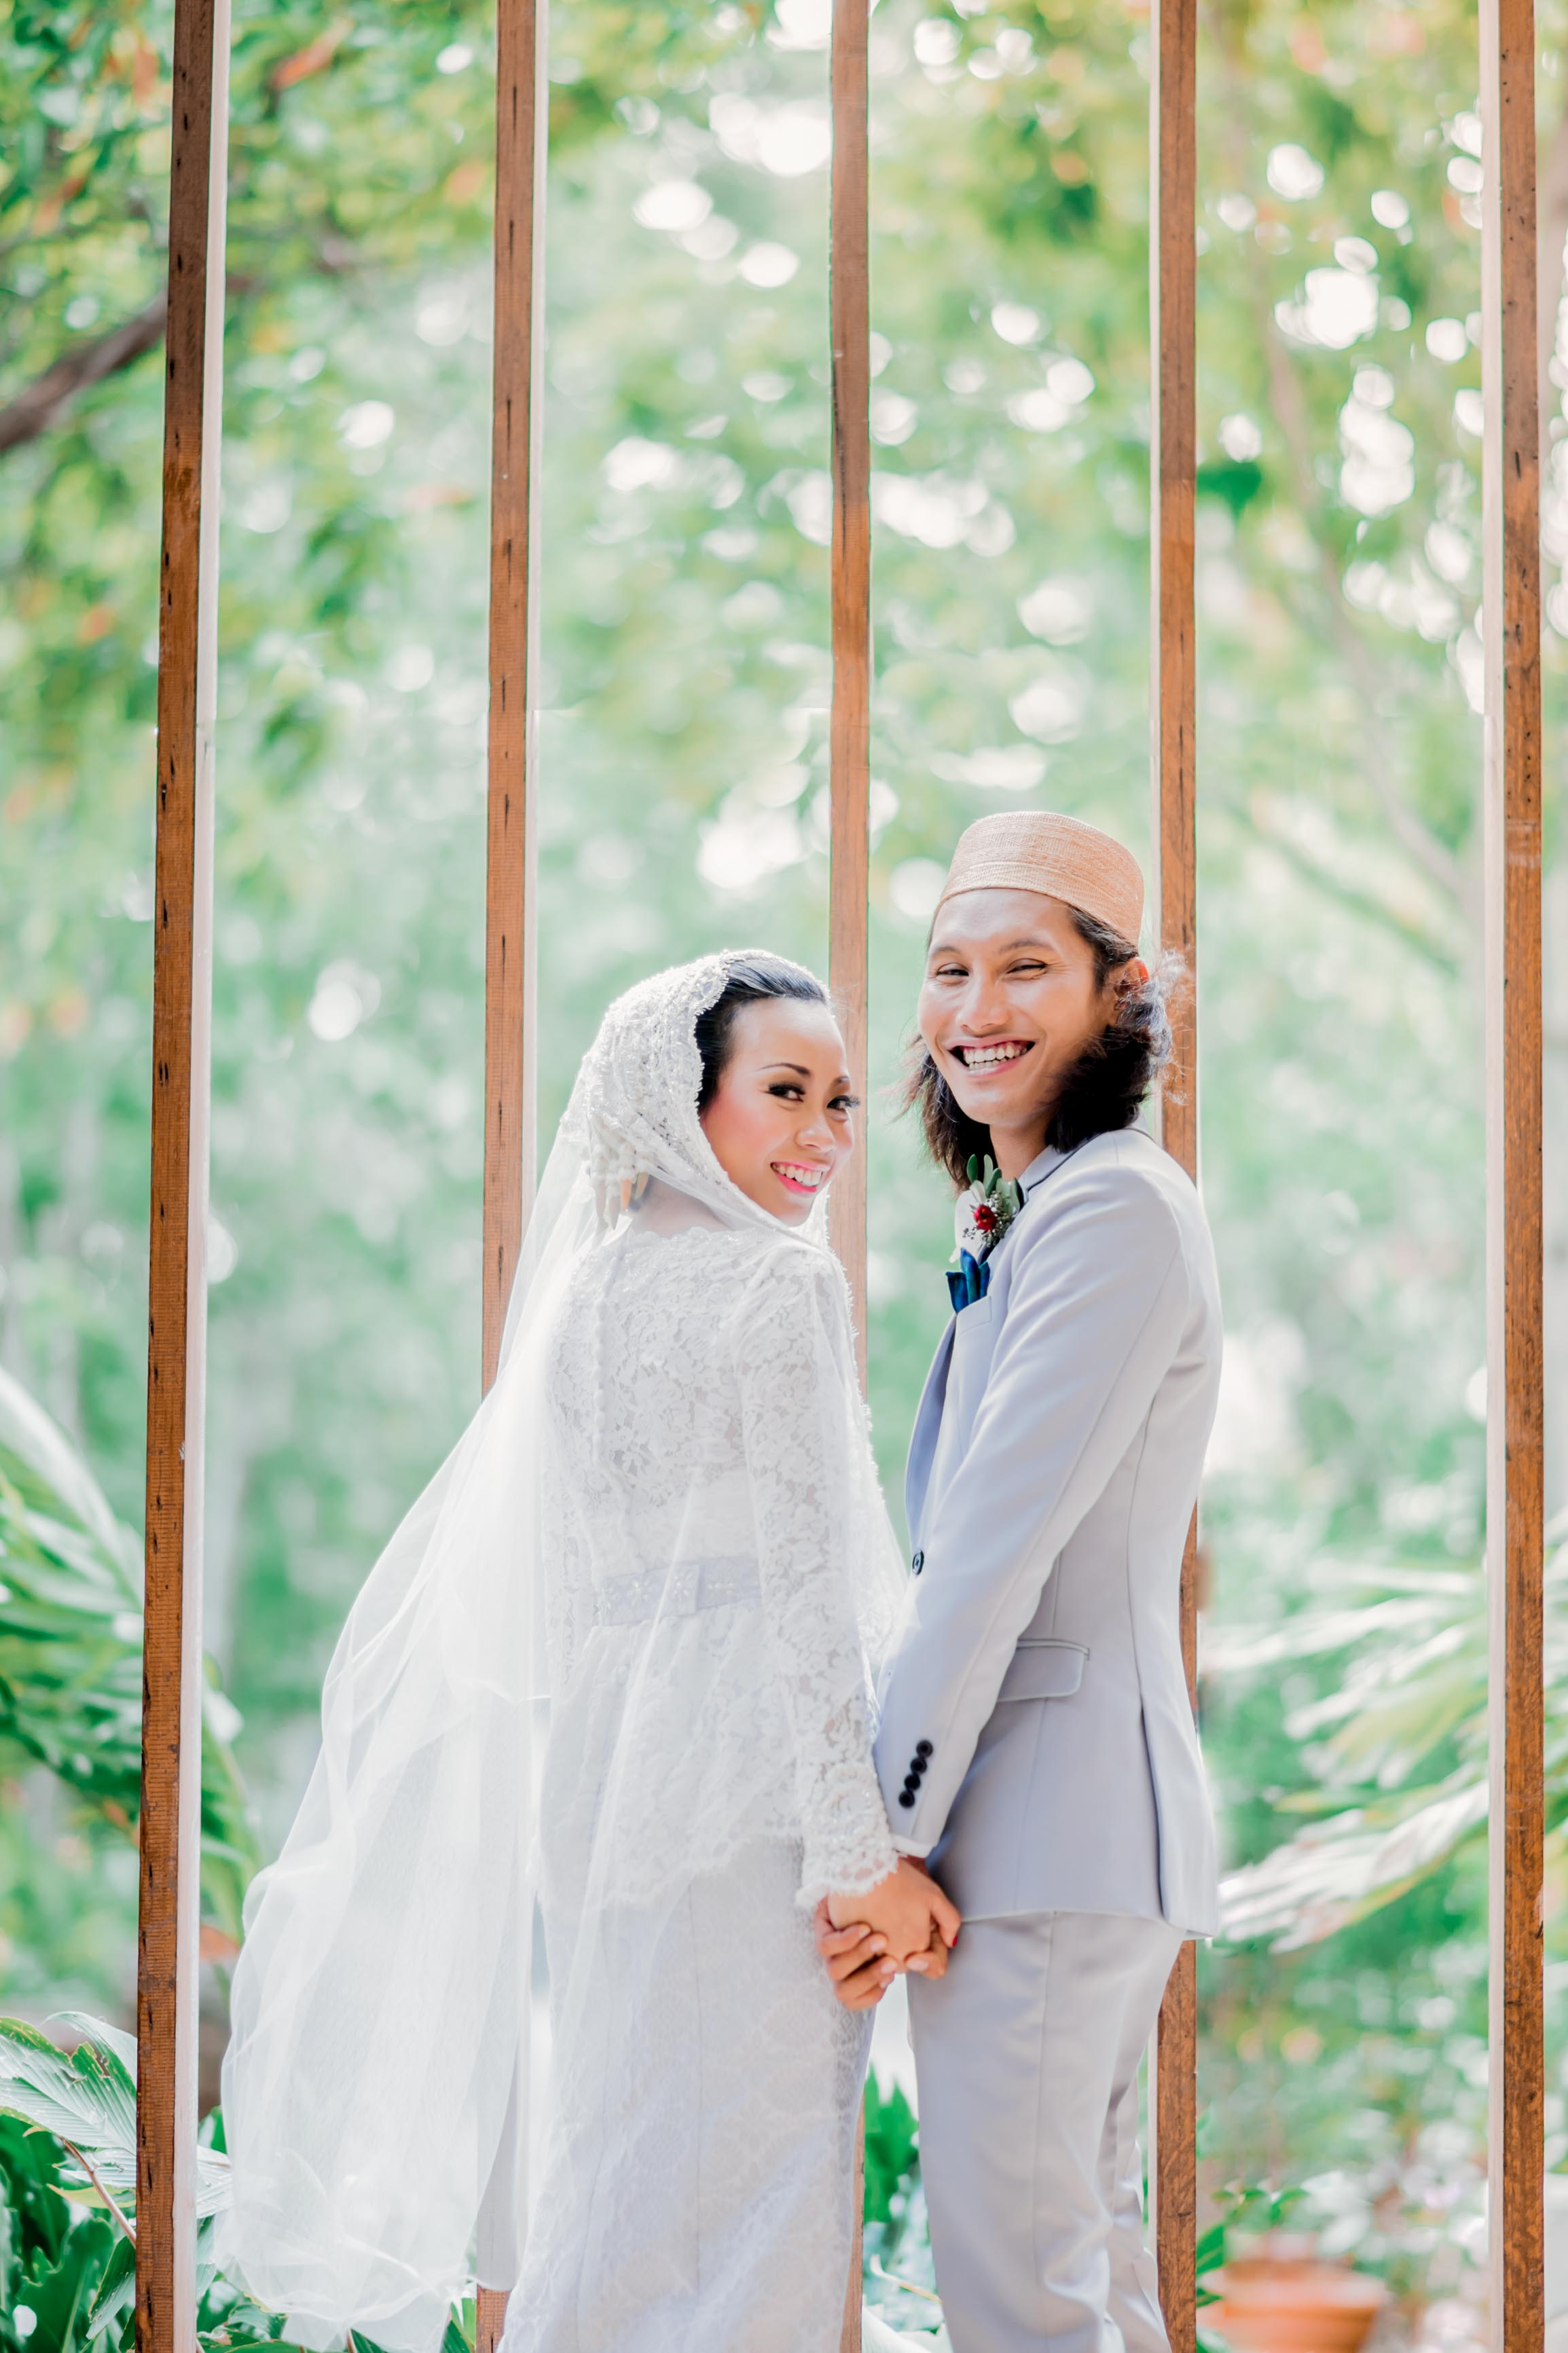 Wedding Photography In Bandung